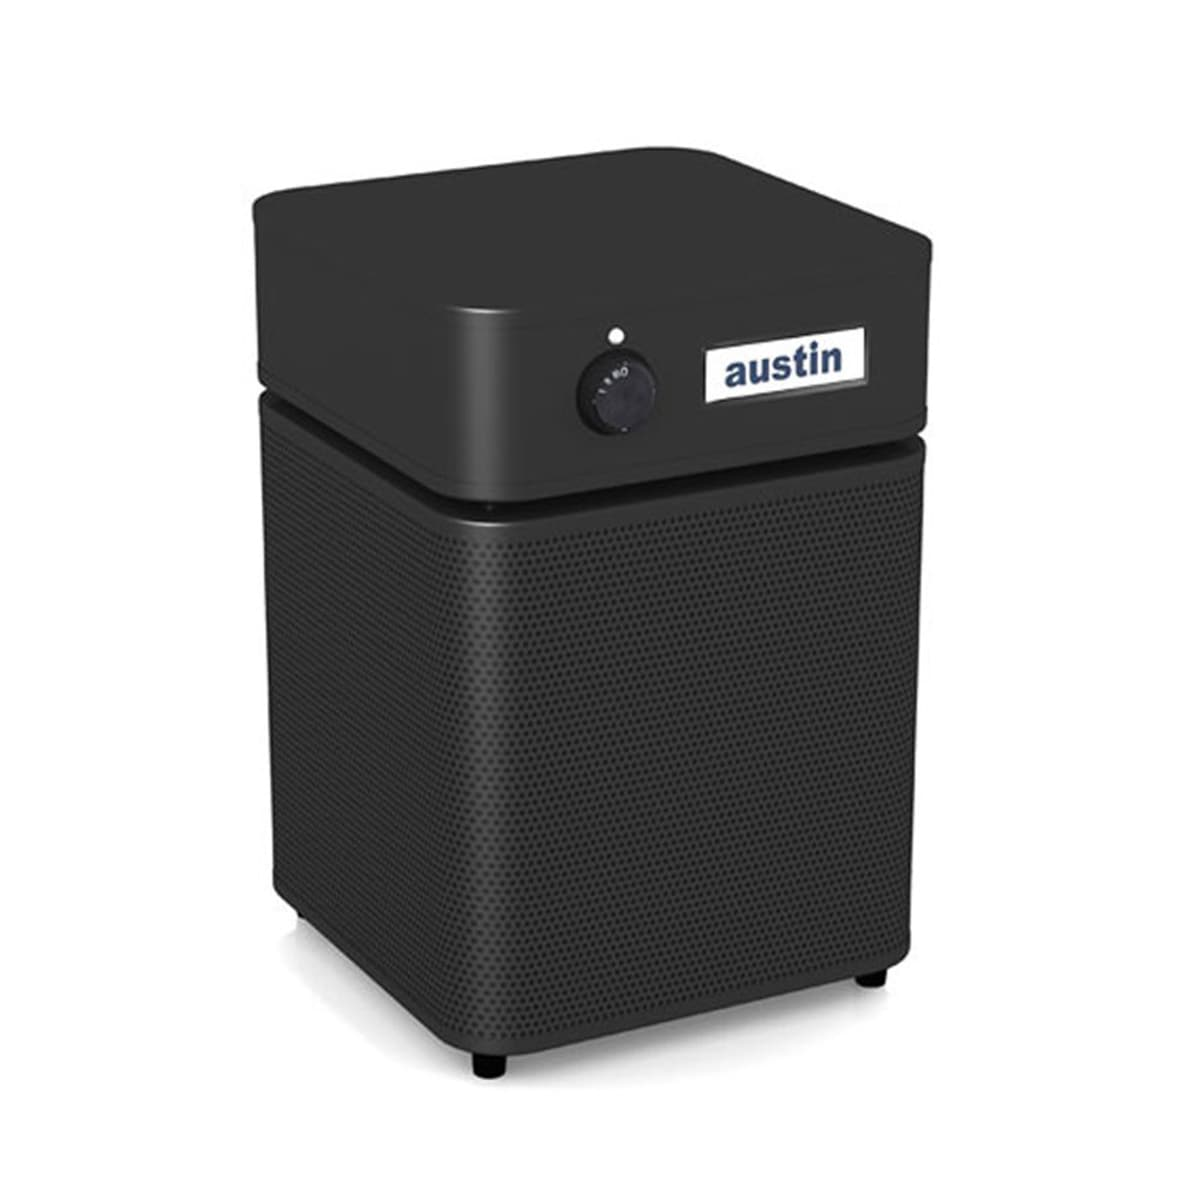 Austin  Air Healthmate Junior Air Purifier Machine - Black PartNumber: SPM9663815322